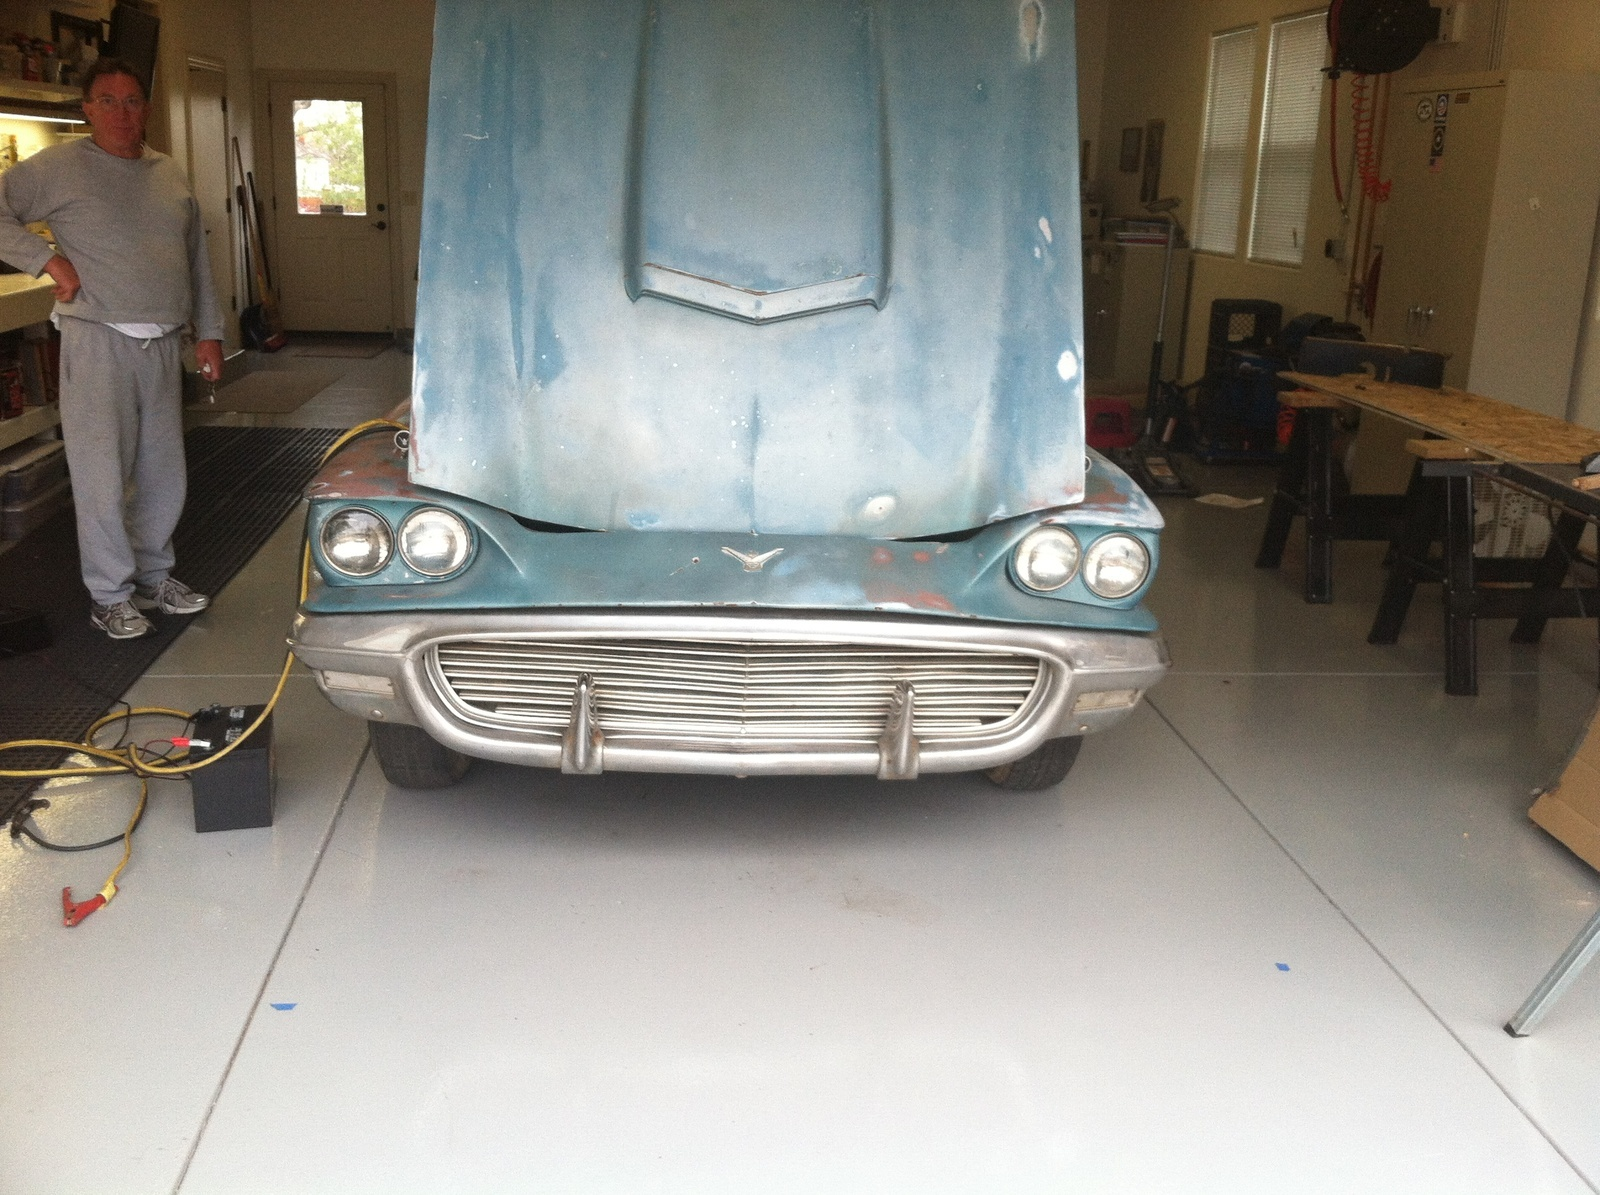 Ford Thunderbird Questions Average Restoration Cost Cargurus Wiring Diagram For 1963 Convertible Top Im Pretty Good With Paint Going To Do That Ill Have A Shop Replace Rusted Panel And The Drivers Seat Needs Be Upholstered